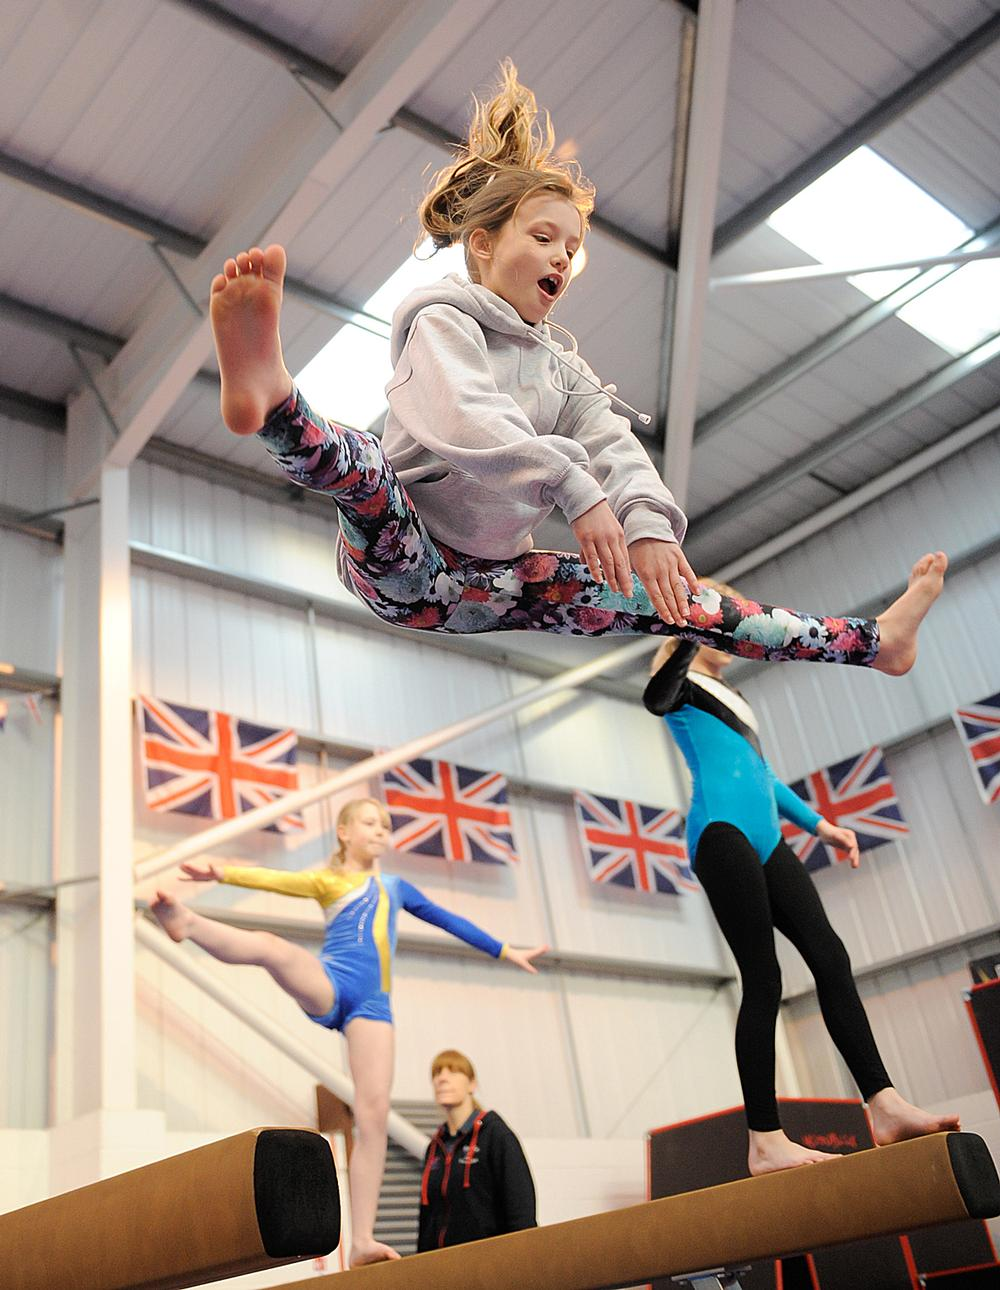 The new Jump into Gymnastics programme aims to give children a great first experience of the sport